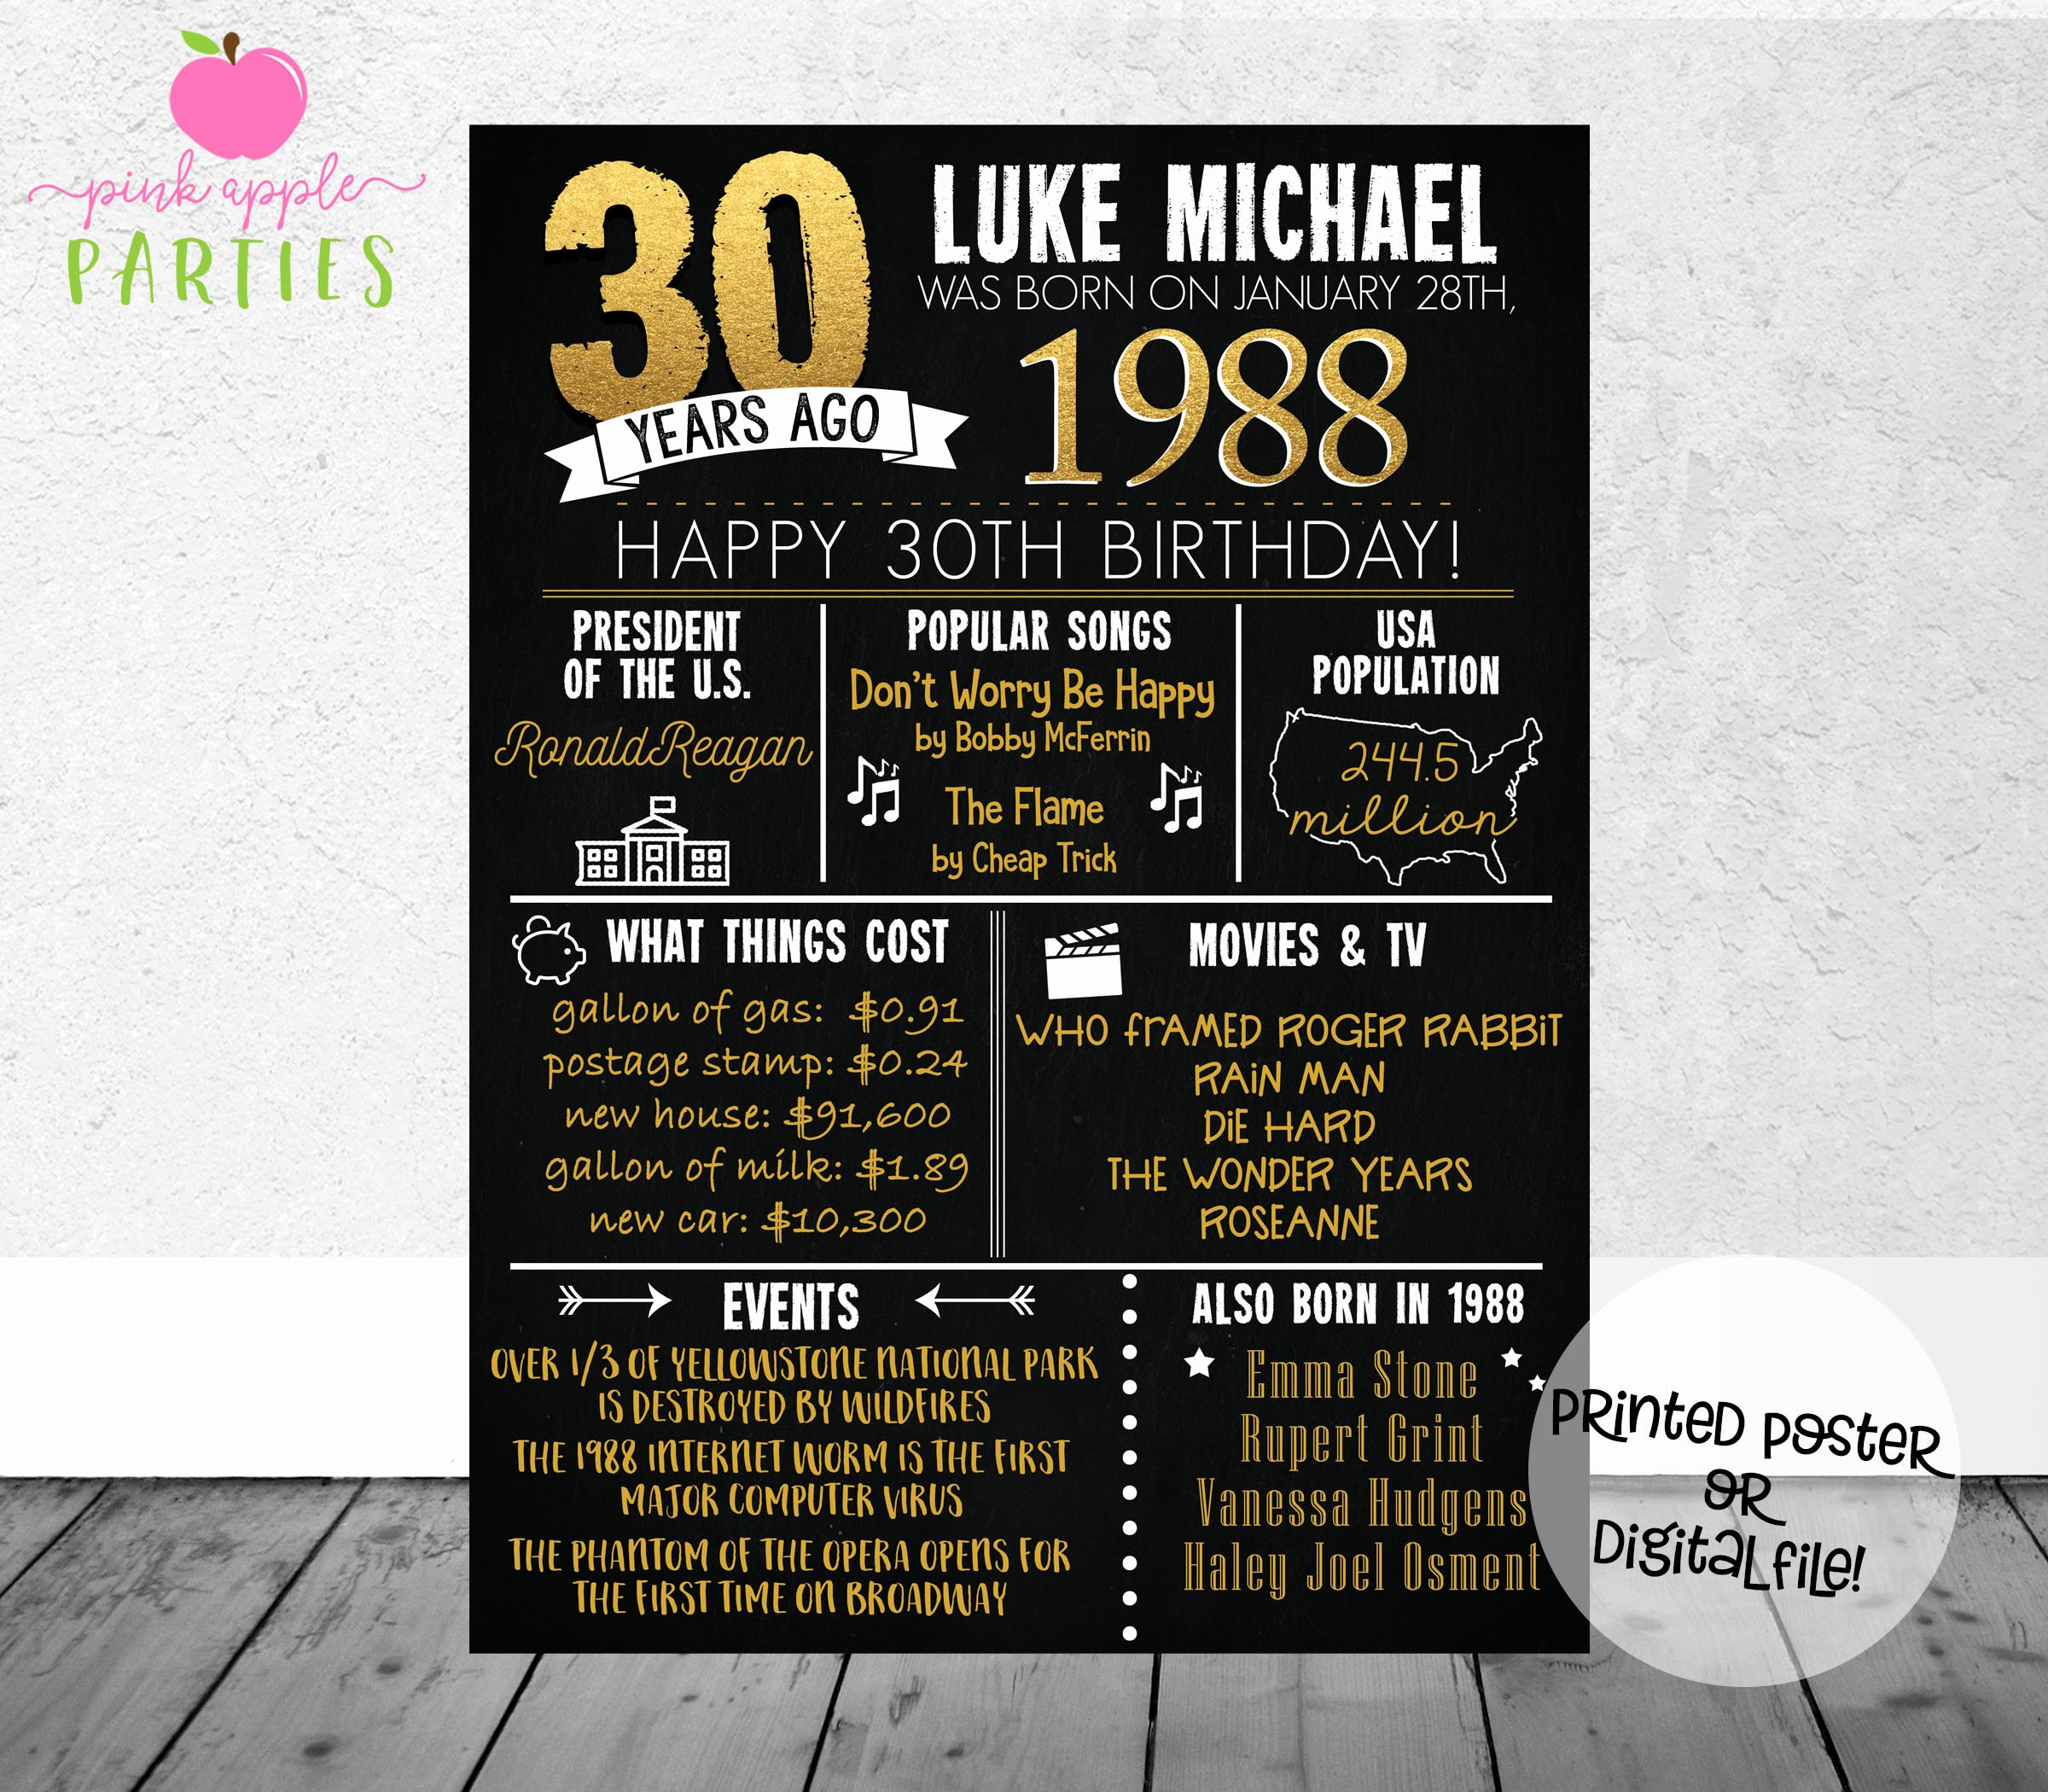 30th Birthday Poster Templates Beautiful 30th Birthday Chalkboard Poster Back In 1988 30 Years Ago